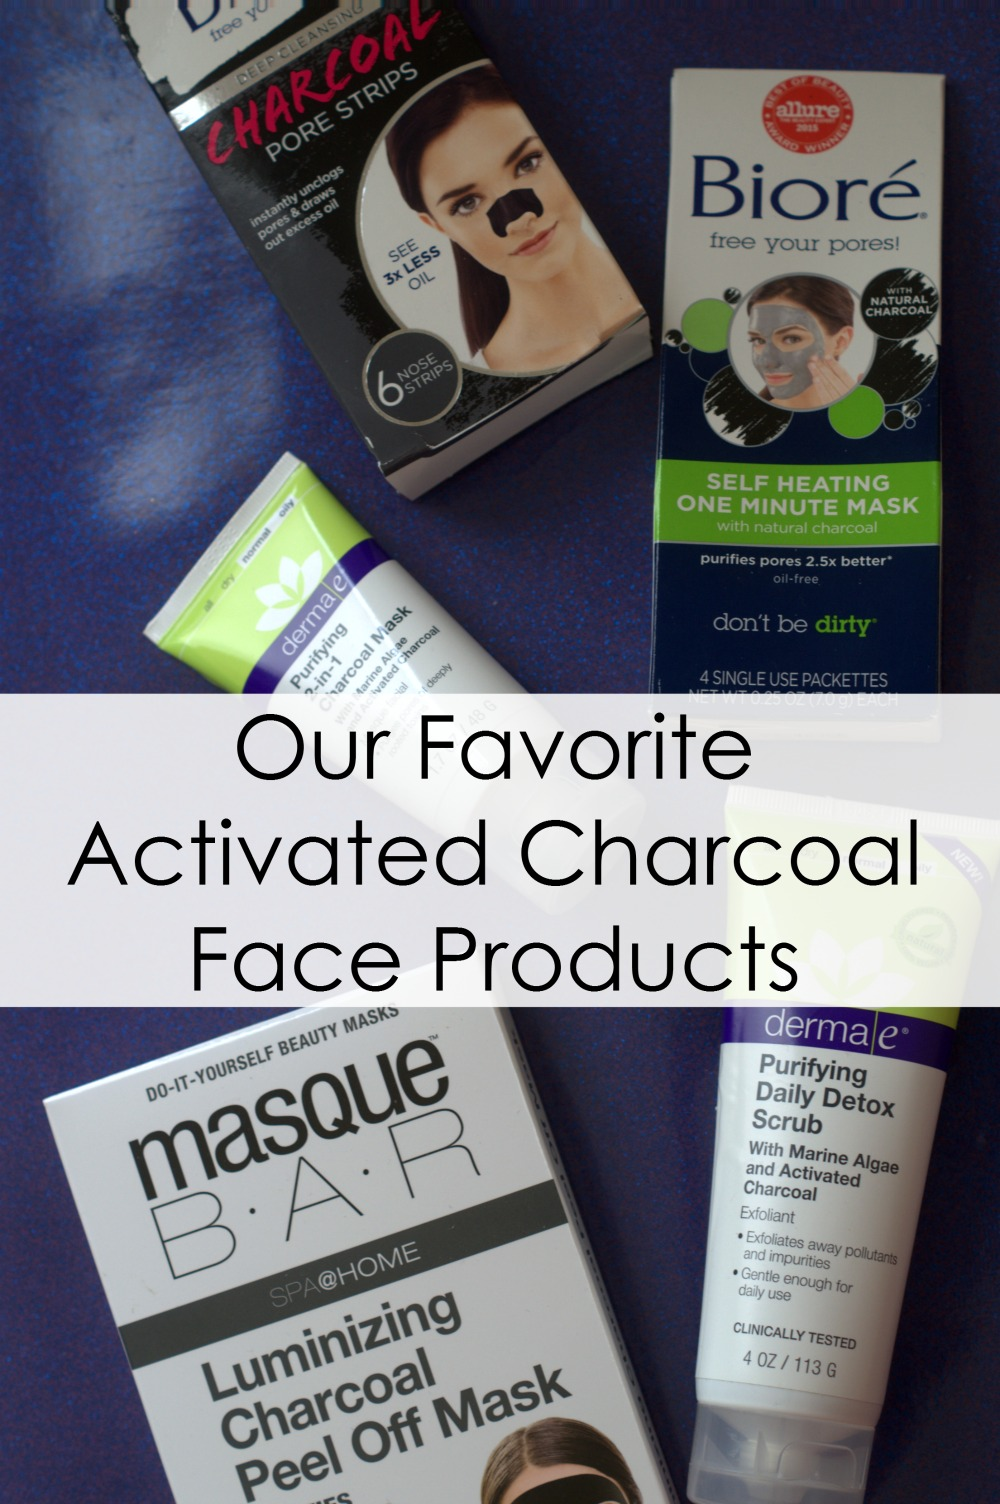 Our favorite activated charcoal beauty products for clear skin